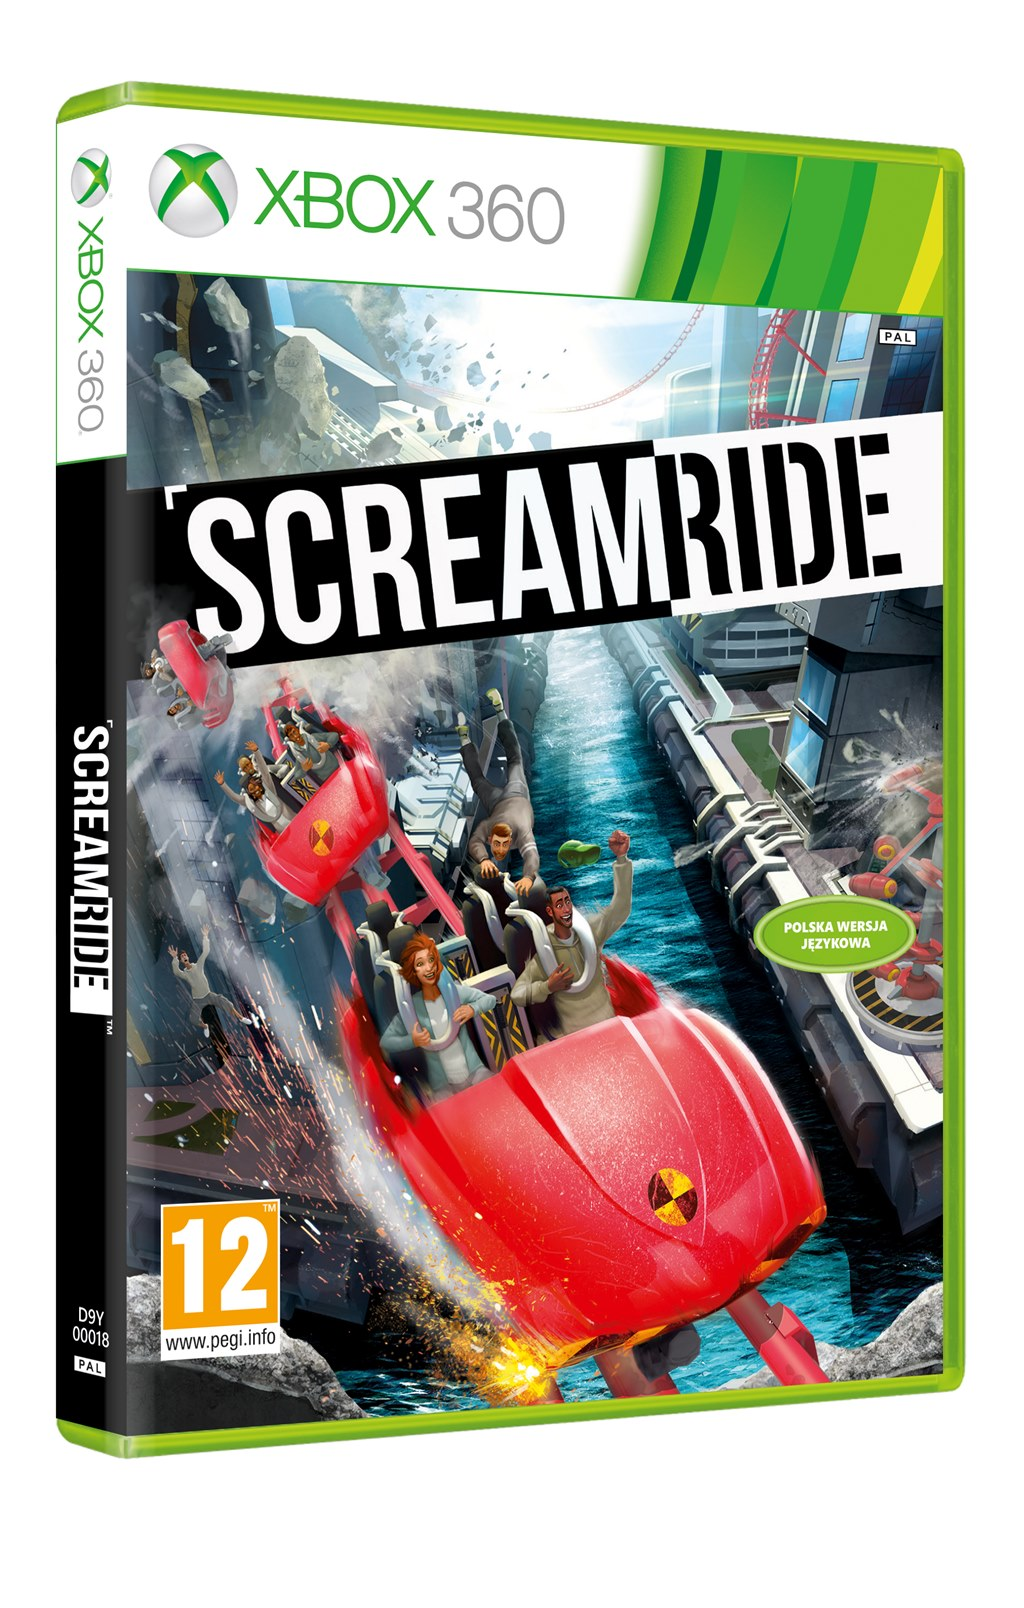 Screamride_Xbox_360_Polish_LHS_Boxshot_RGB